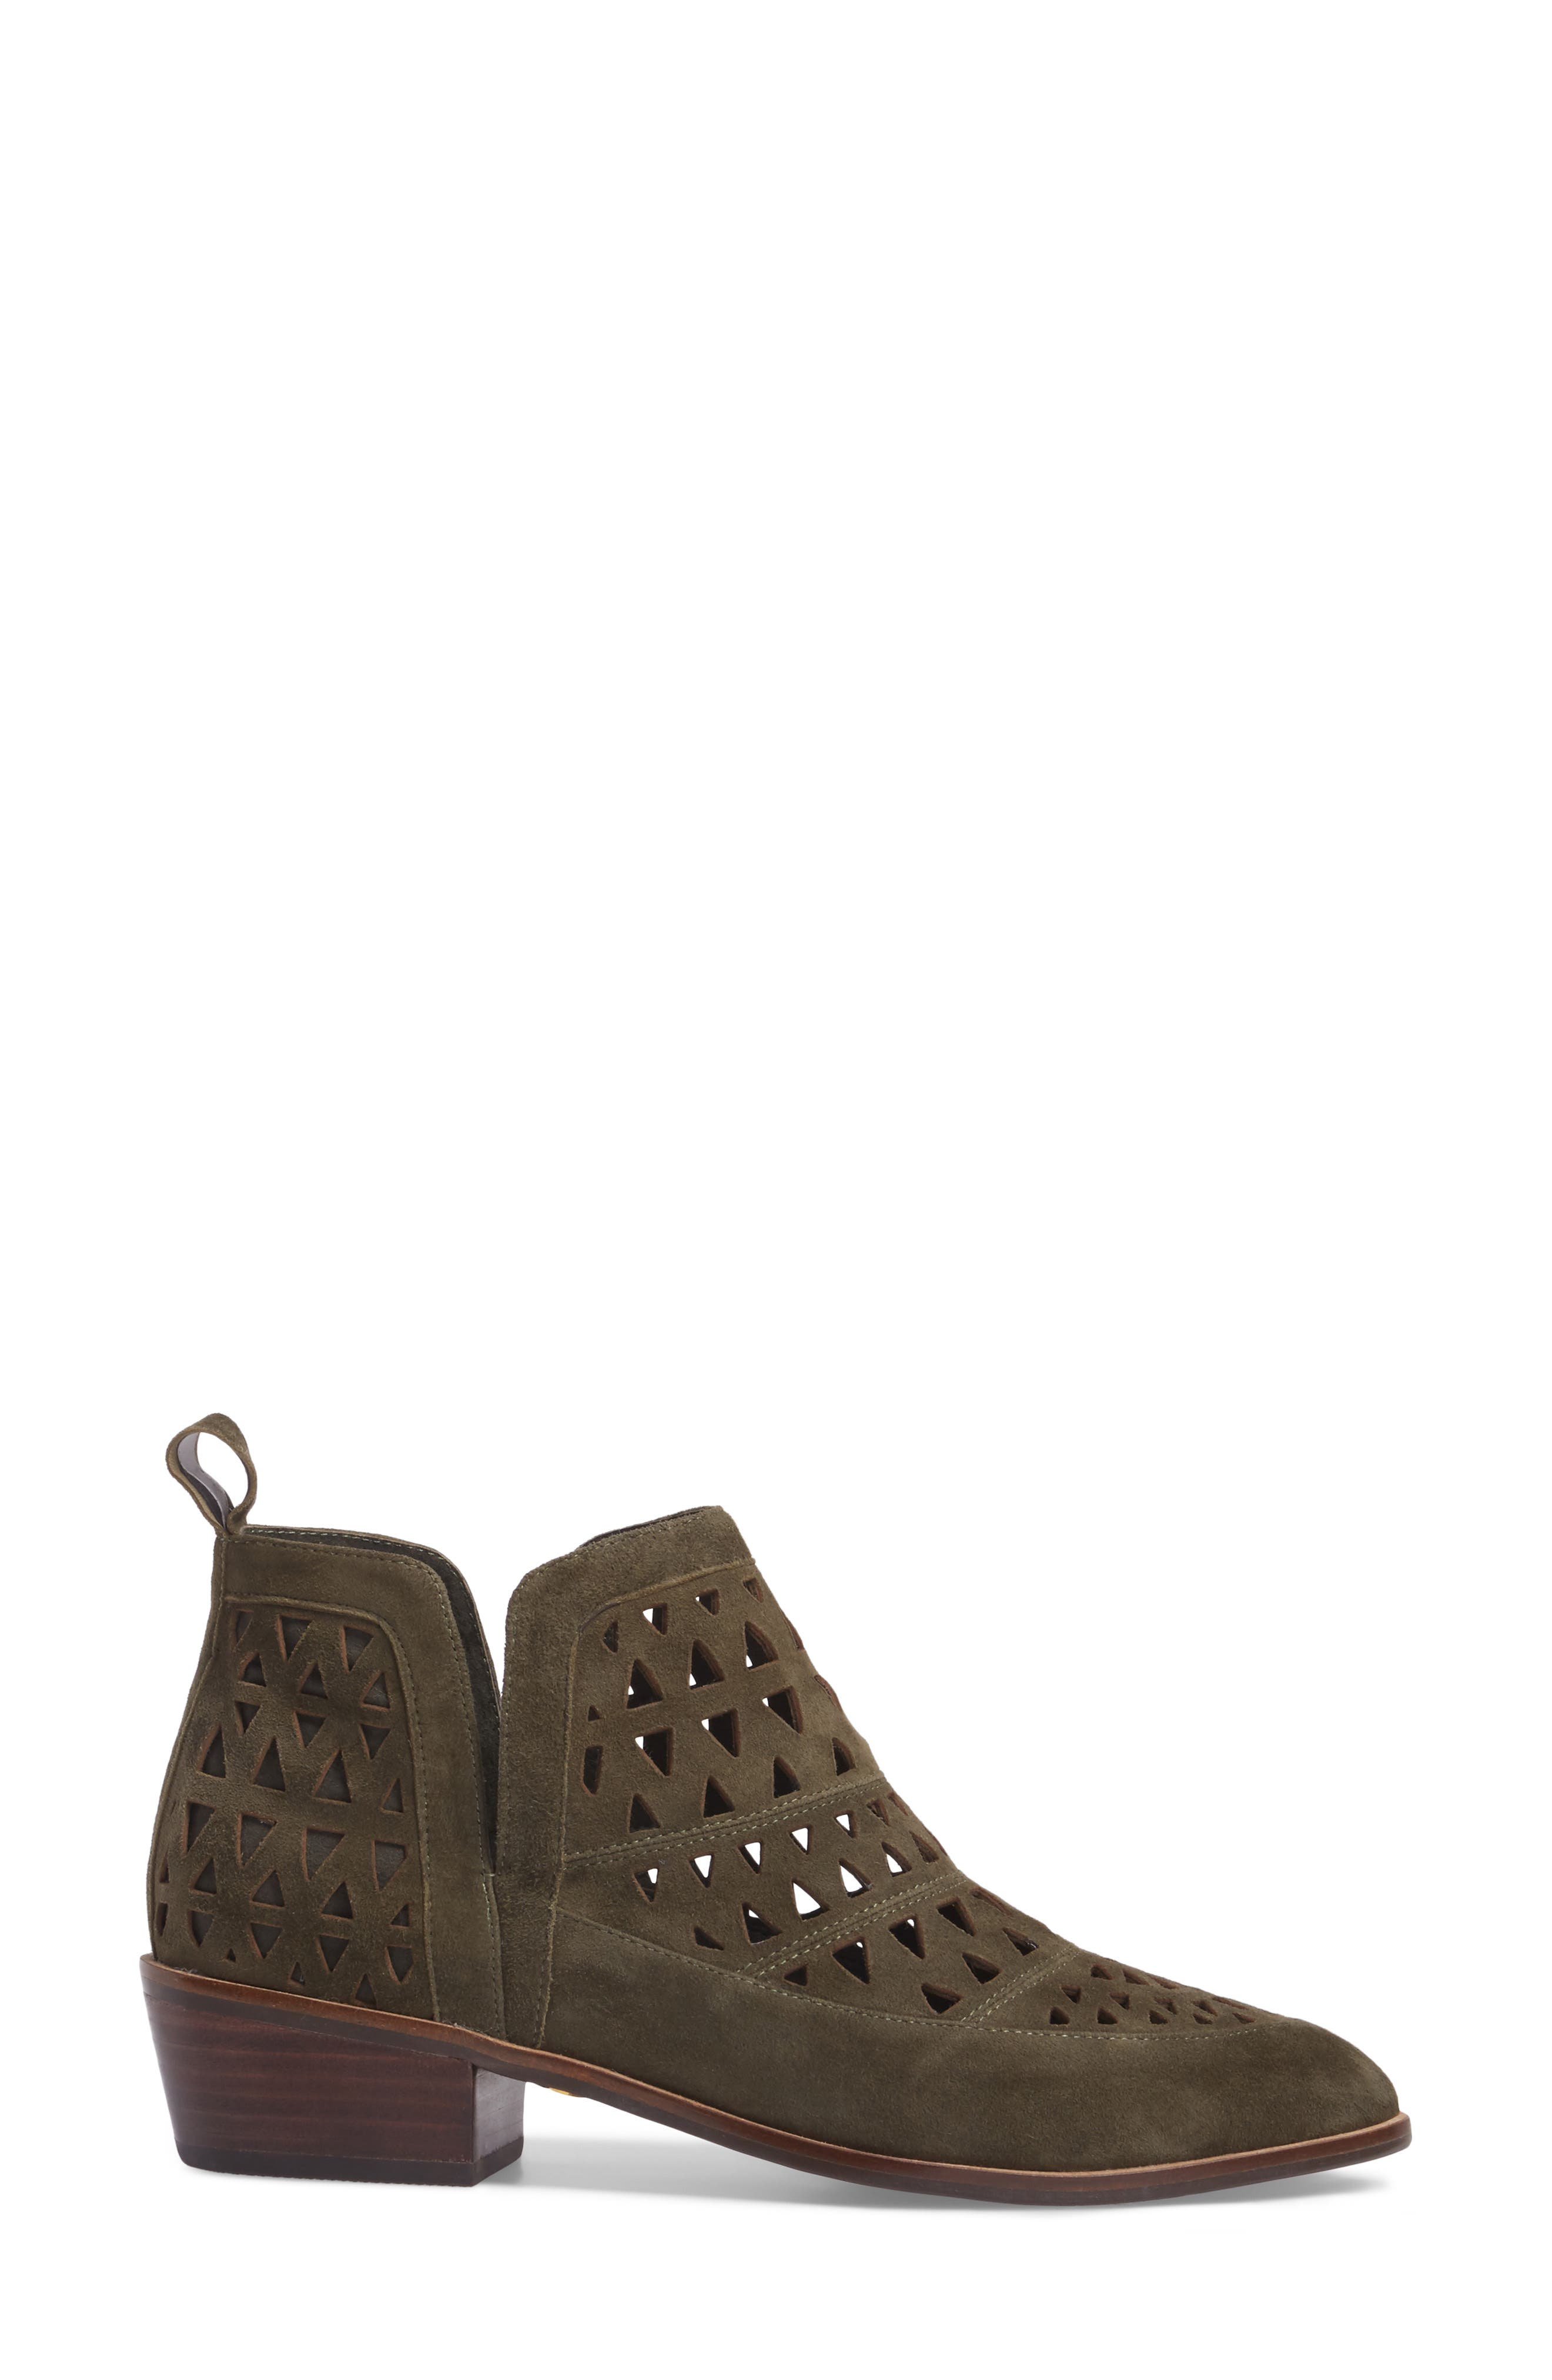 Catherine Cutout Bootie,                             Alternate thumbnail 3, color,                             Olive Suede